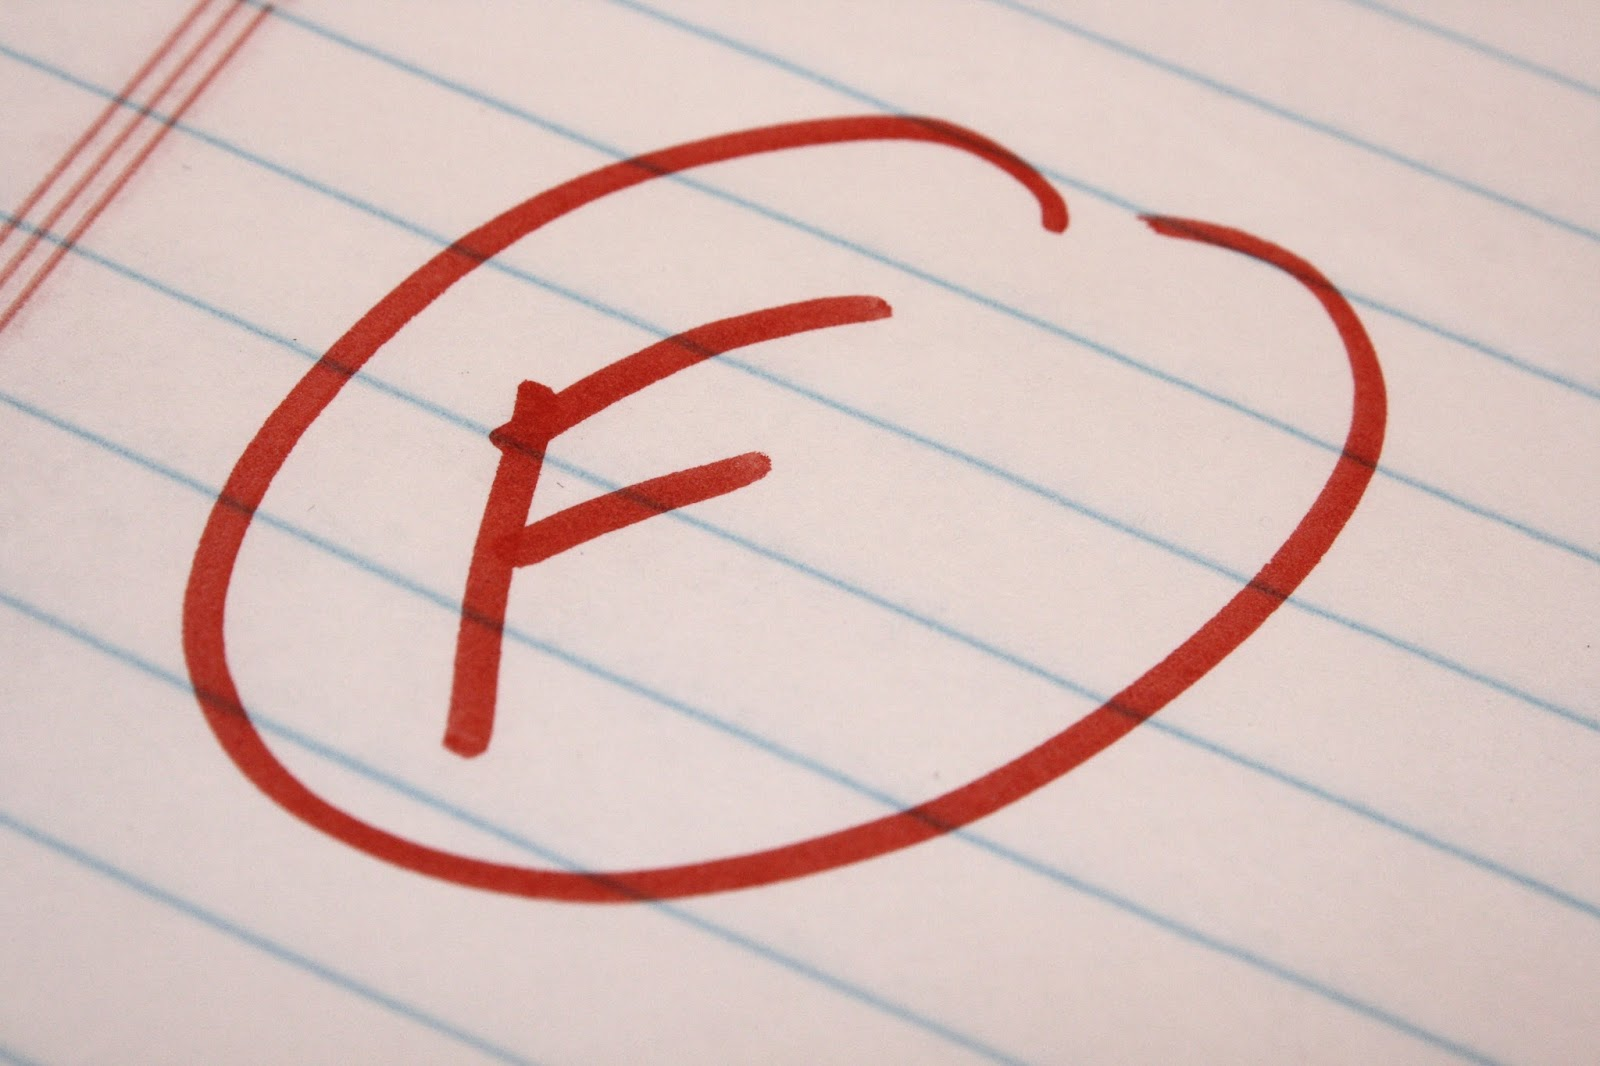 How to Deal with Bad College Grades